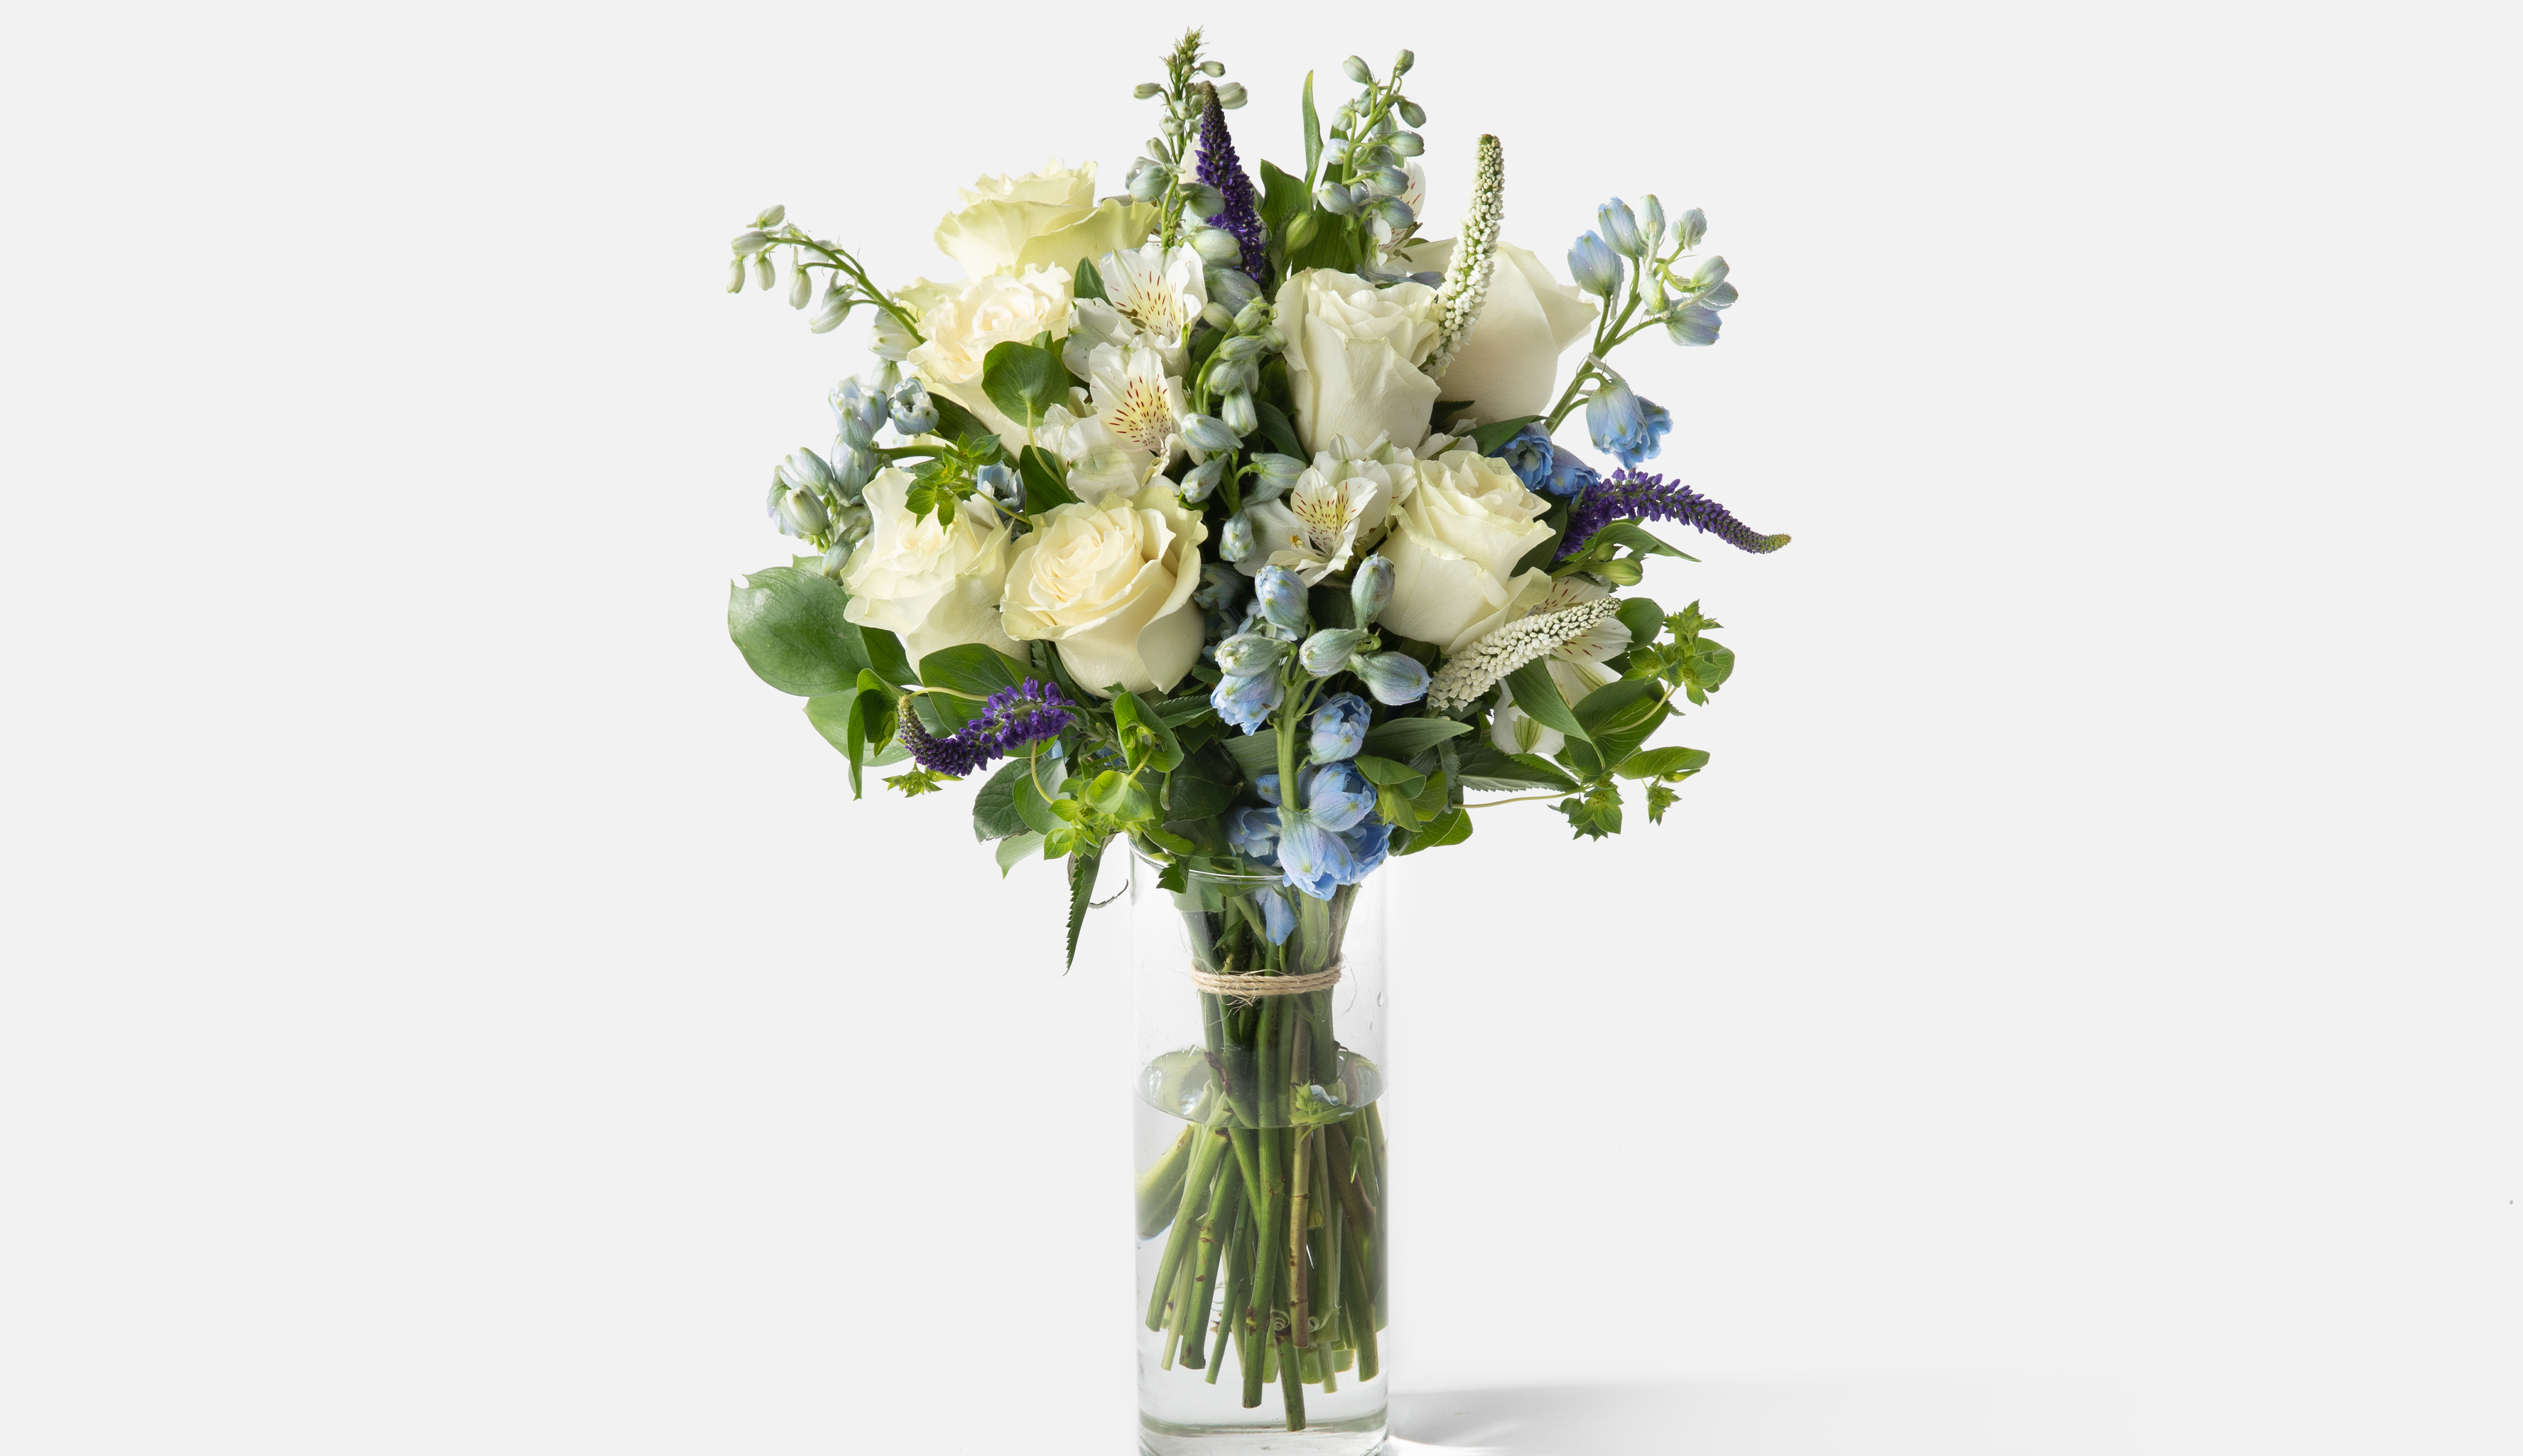 Flower bouquet containing roses and delphiniums in a glass vase